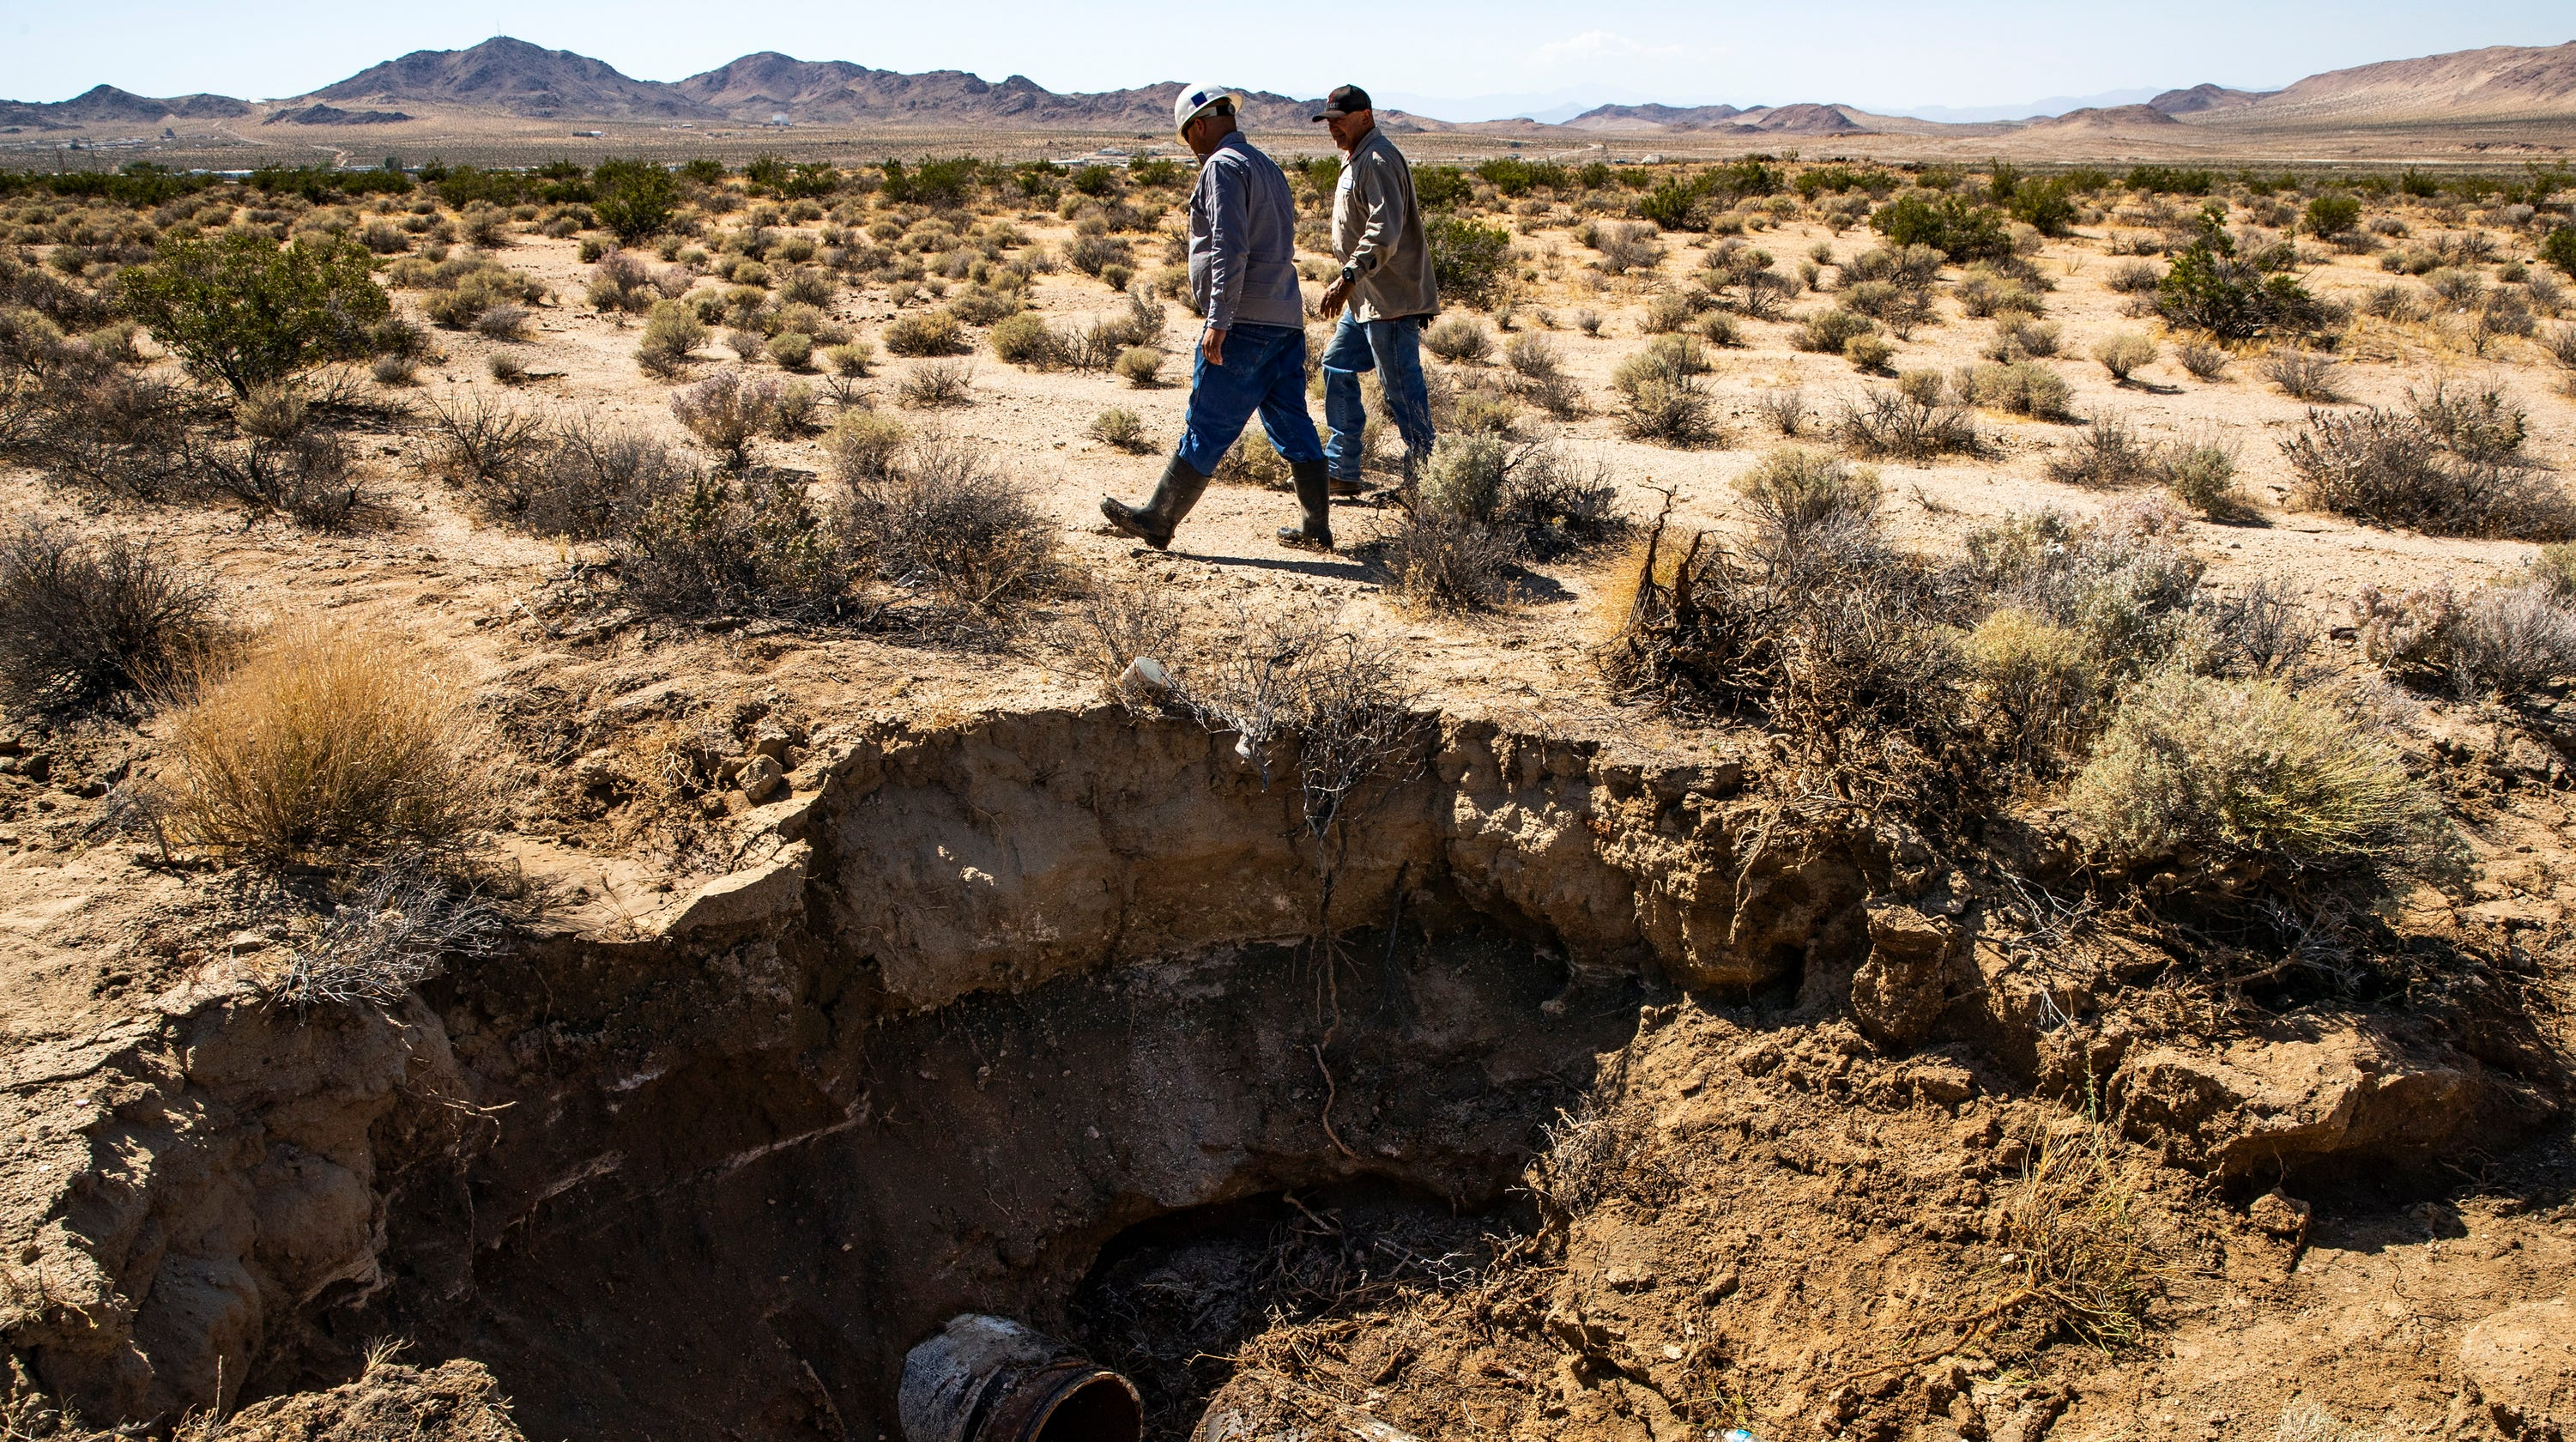 6.4 magnitude earthquake rattles parts of Southern California on map of san bernardino county, map of storey county, map of fresno county, map of missouri county, map of young county, map of ventura county, map of chicot county, map of tulare county, map of du page county, map of los angeles county, map of washington county, map of stone county, map of el dorado county, map of tippah county, map of routt county, map of pope county, map of natrona county, map of grant county, map of chattooga county, map of fisher county,